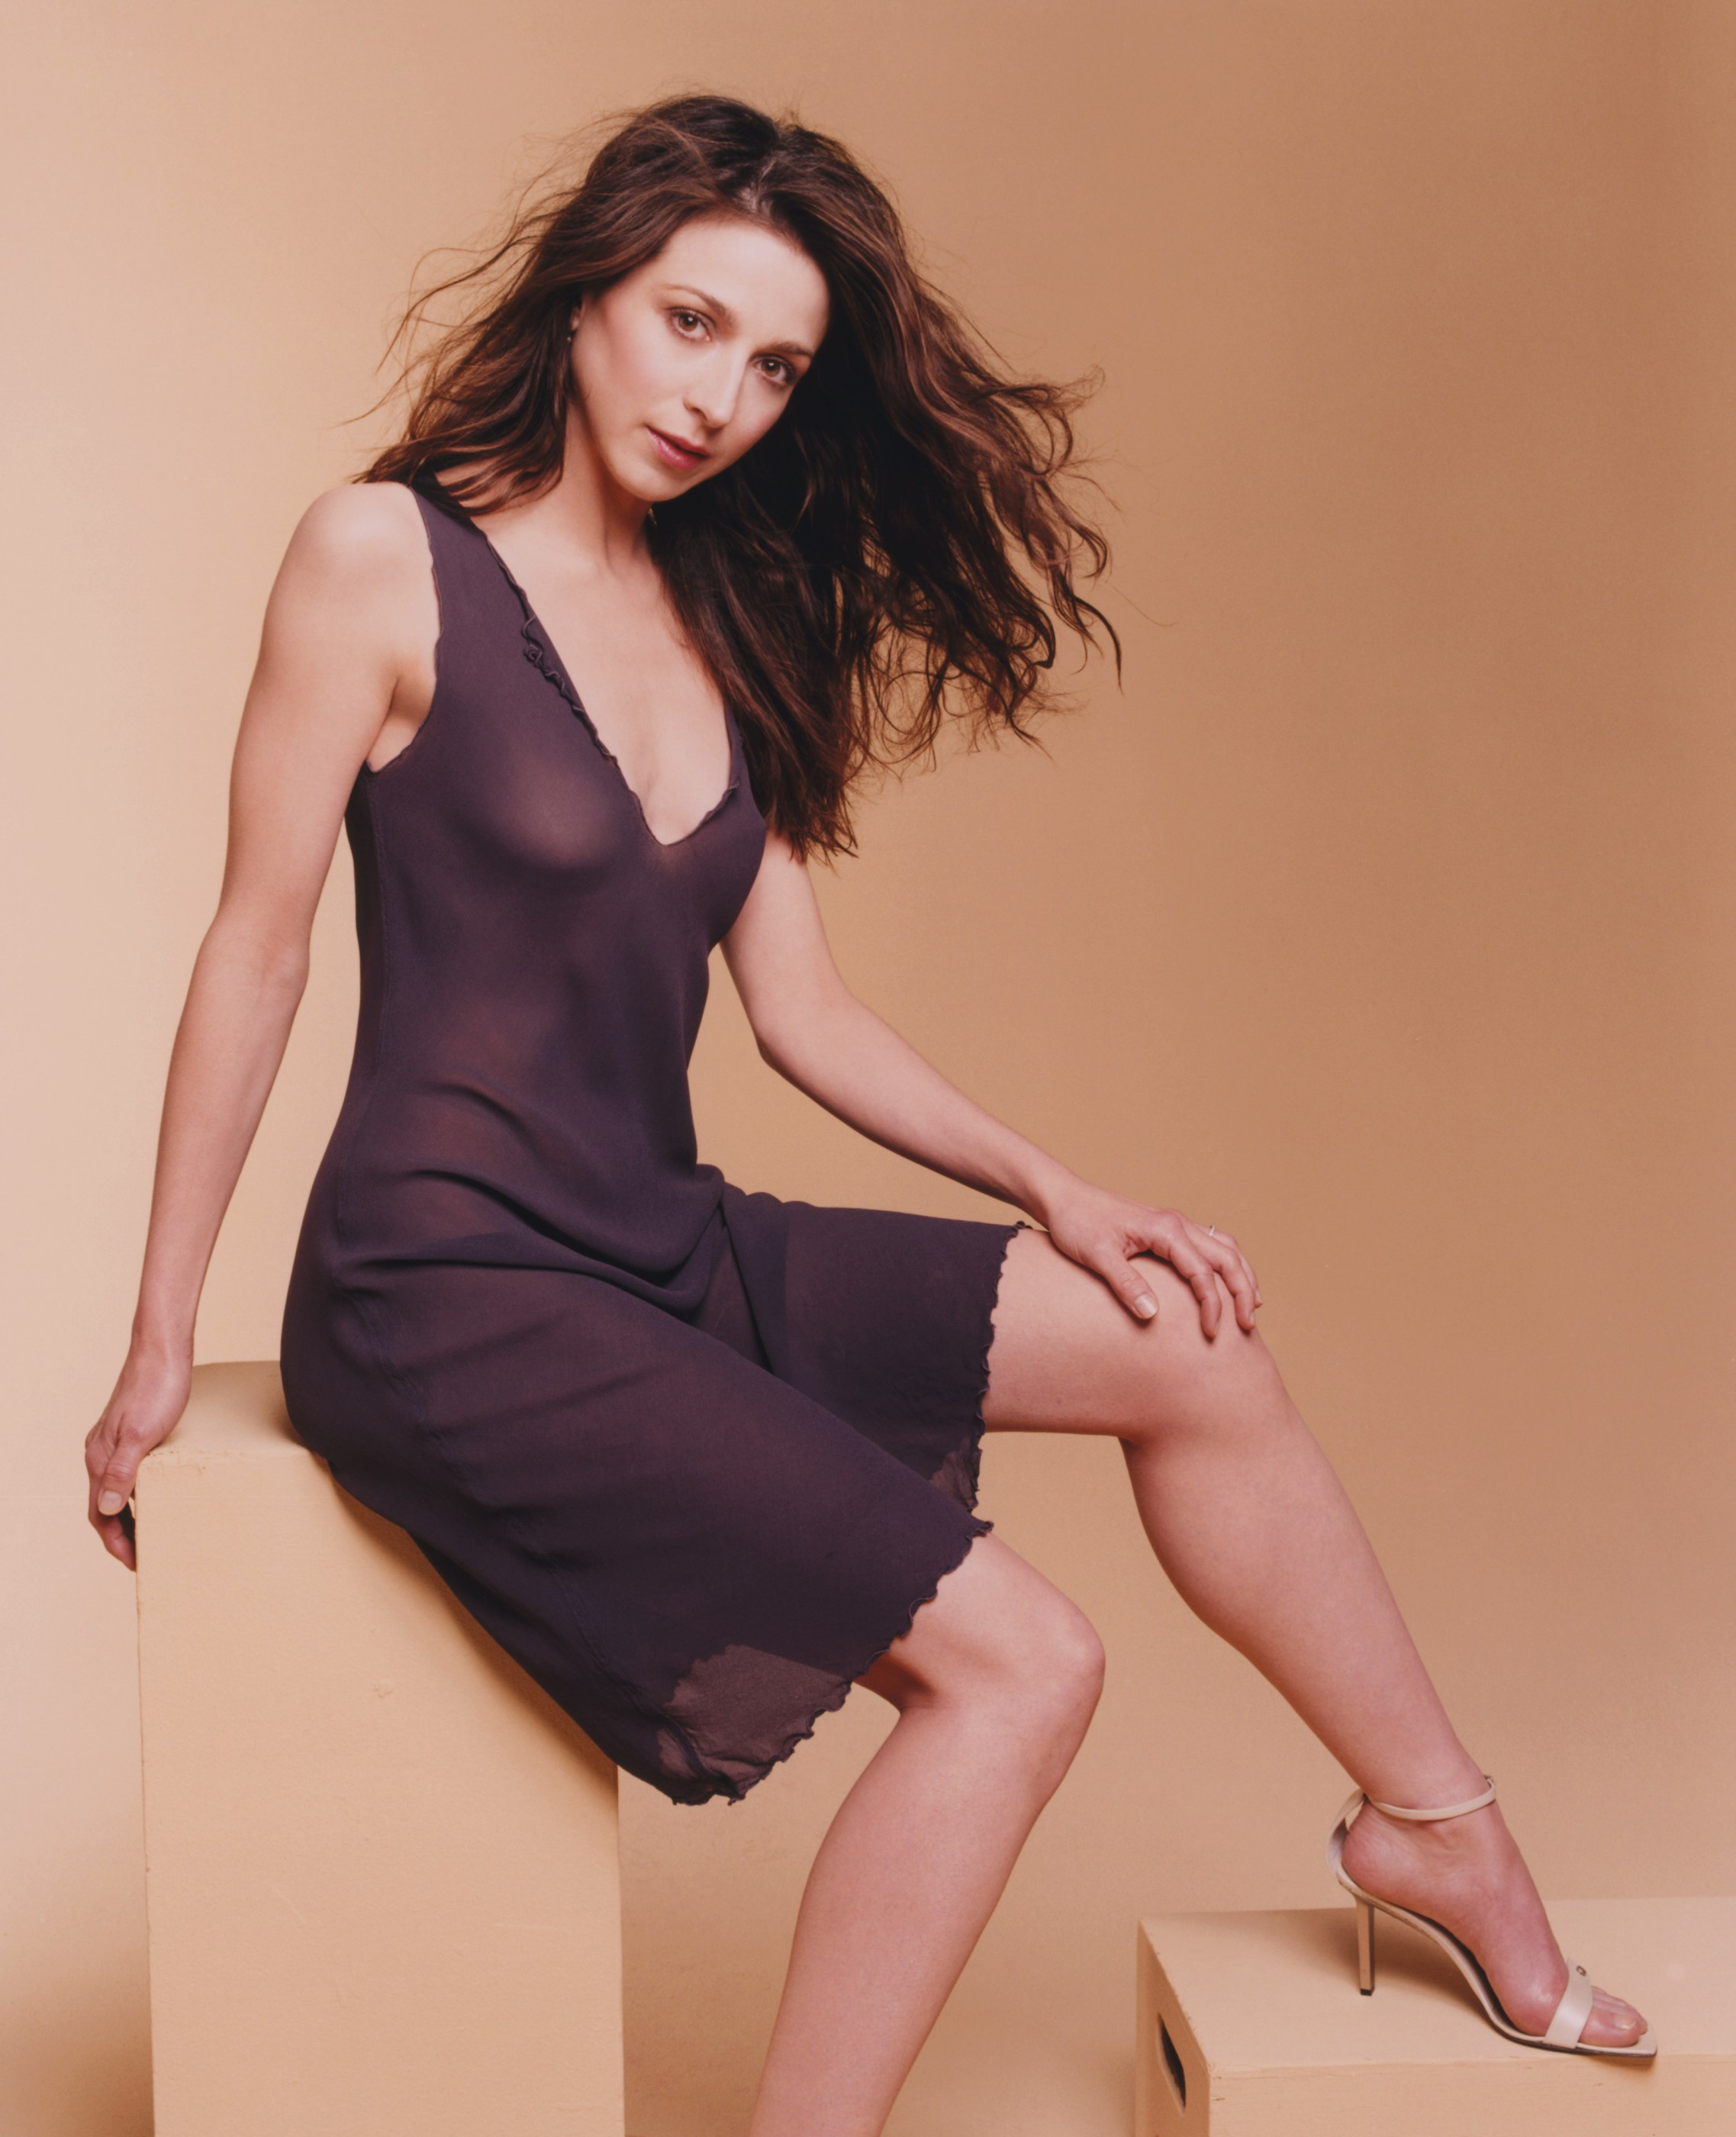 Two And A Half Men Marin Hinkle Hot